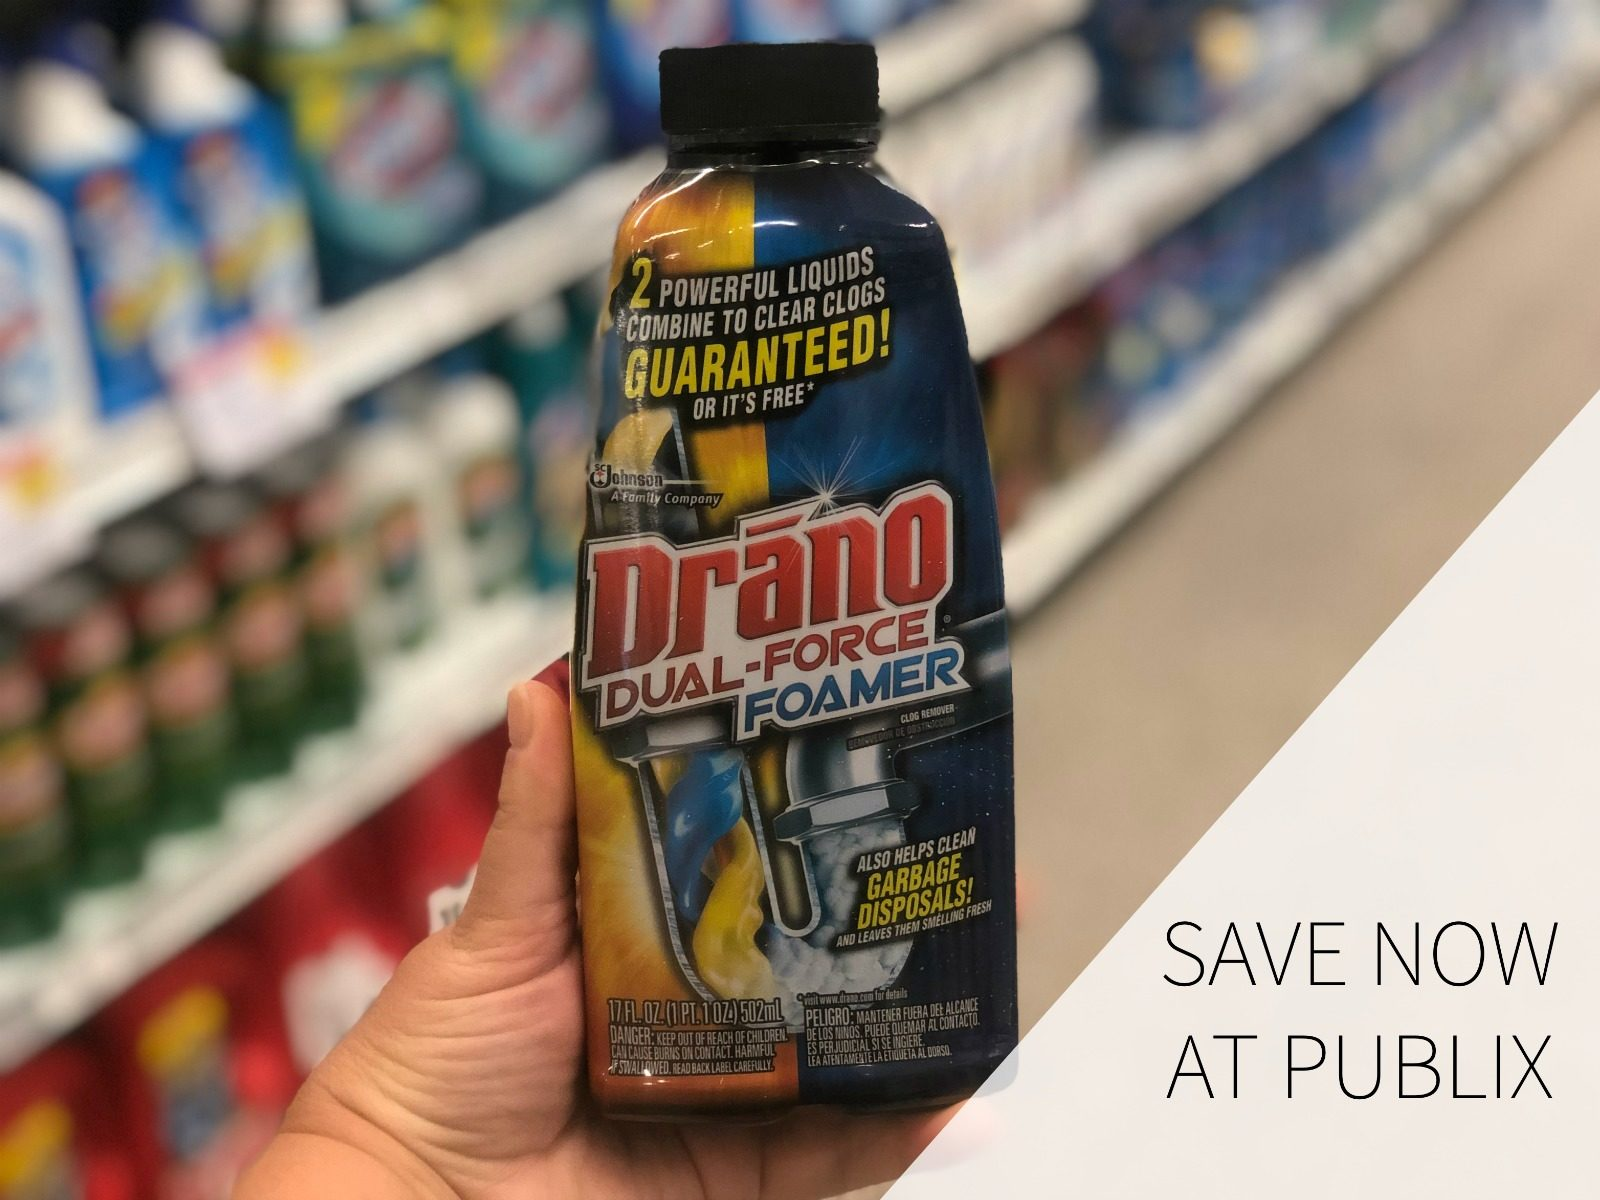 Pick Up A Super Deal On Drano® Products & Be Ready For Any Holiday Mess! on I Heart Publix